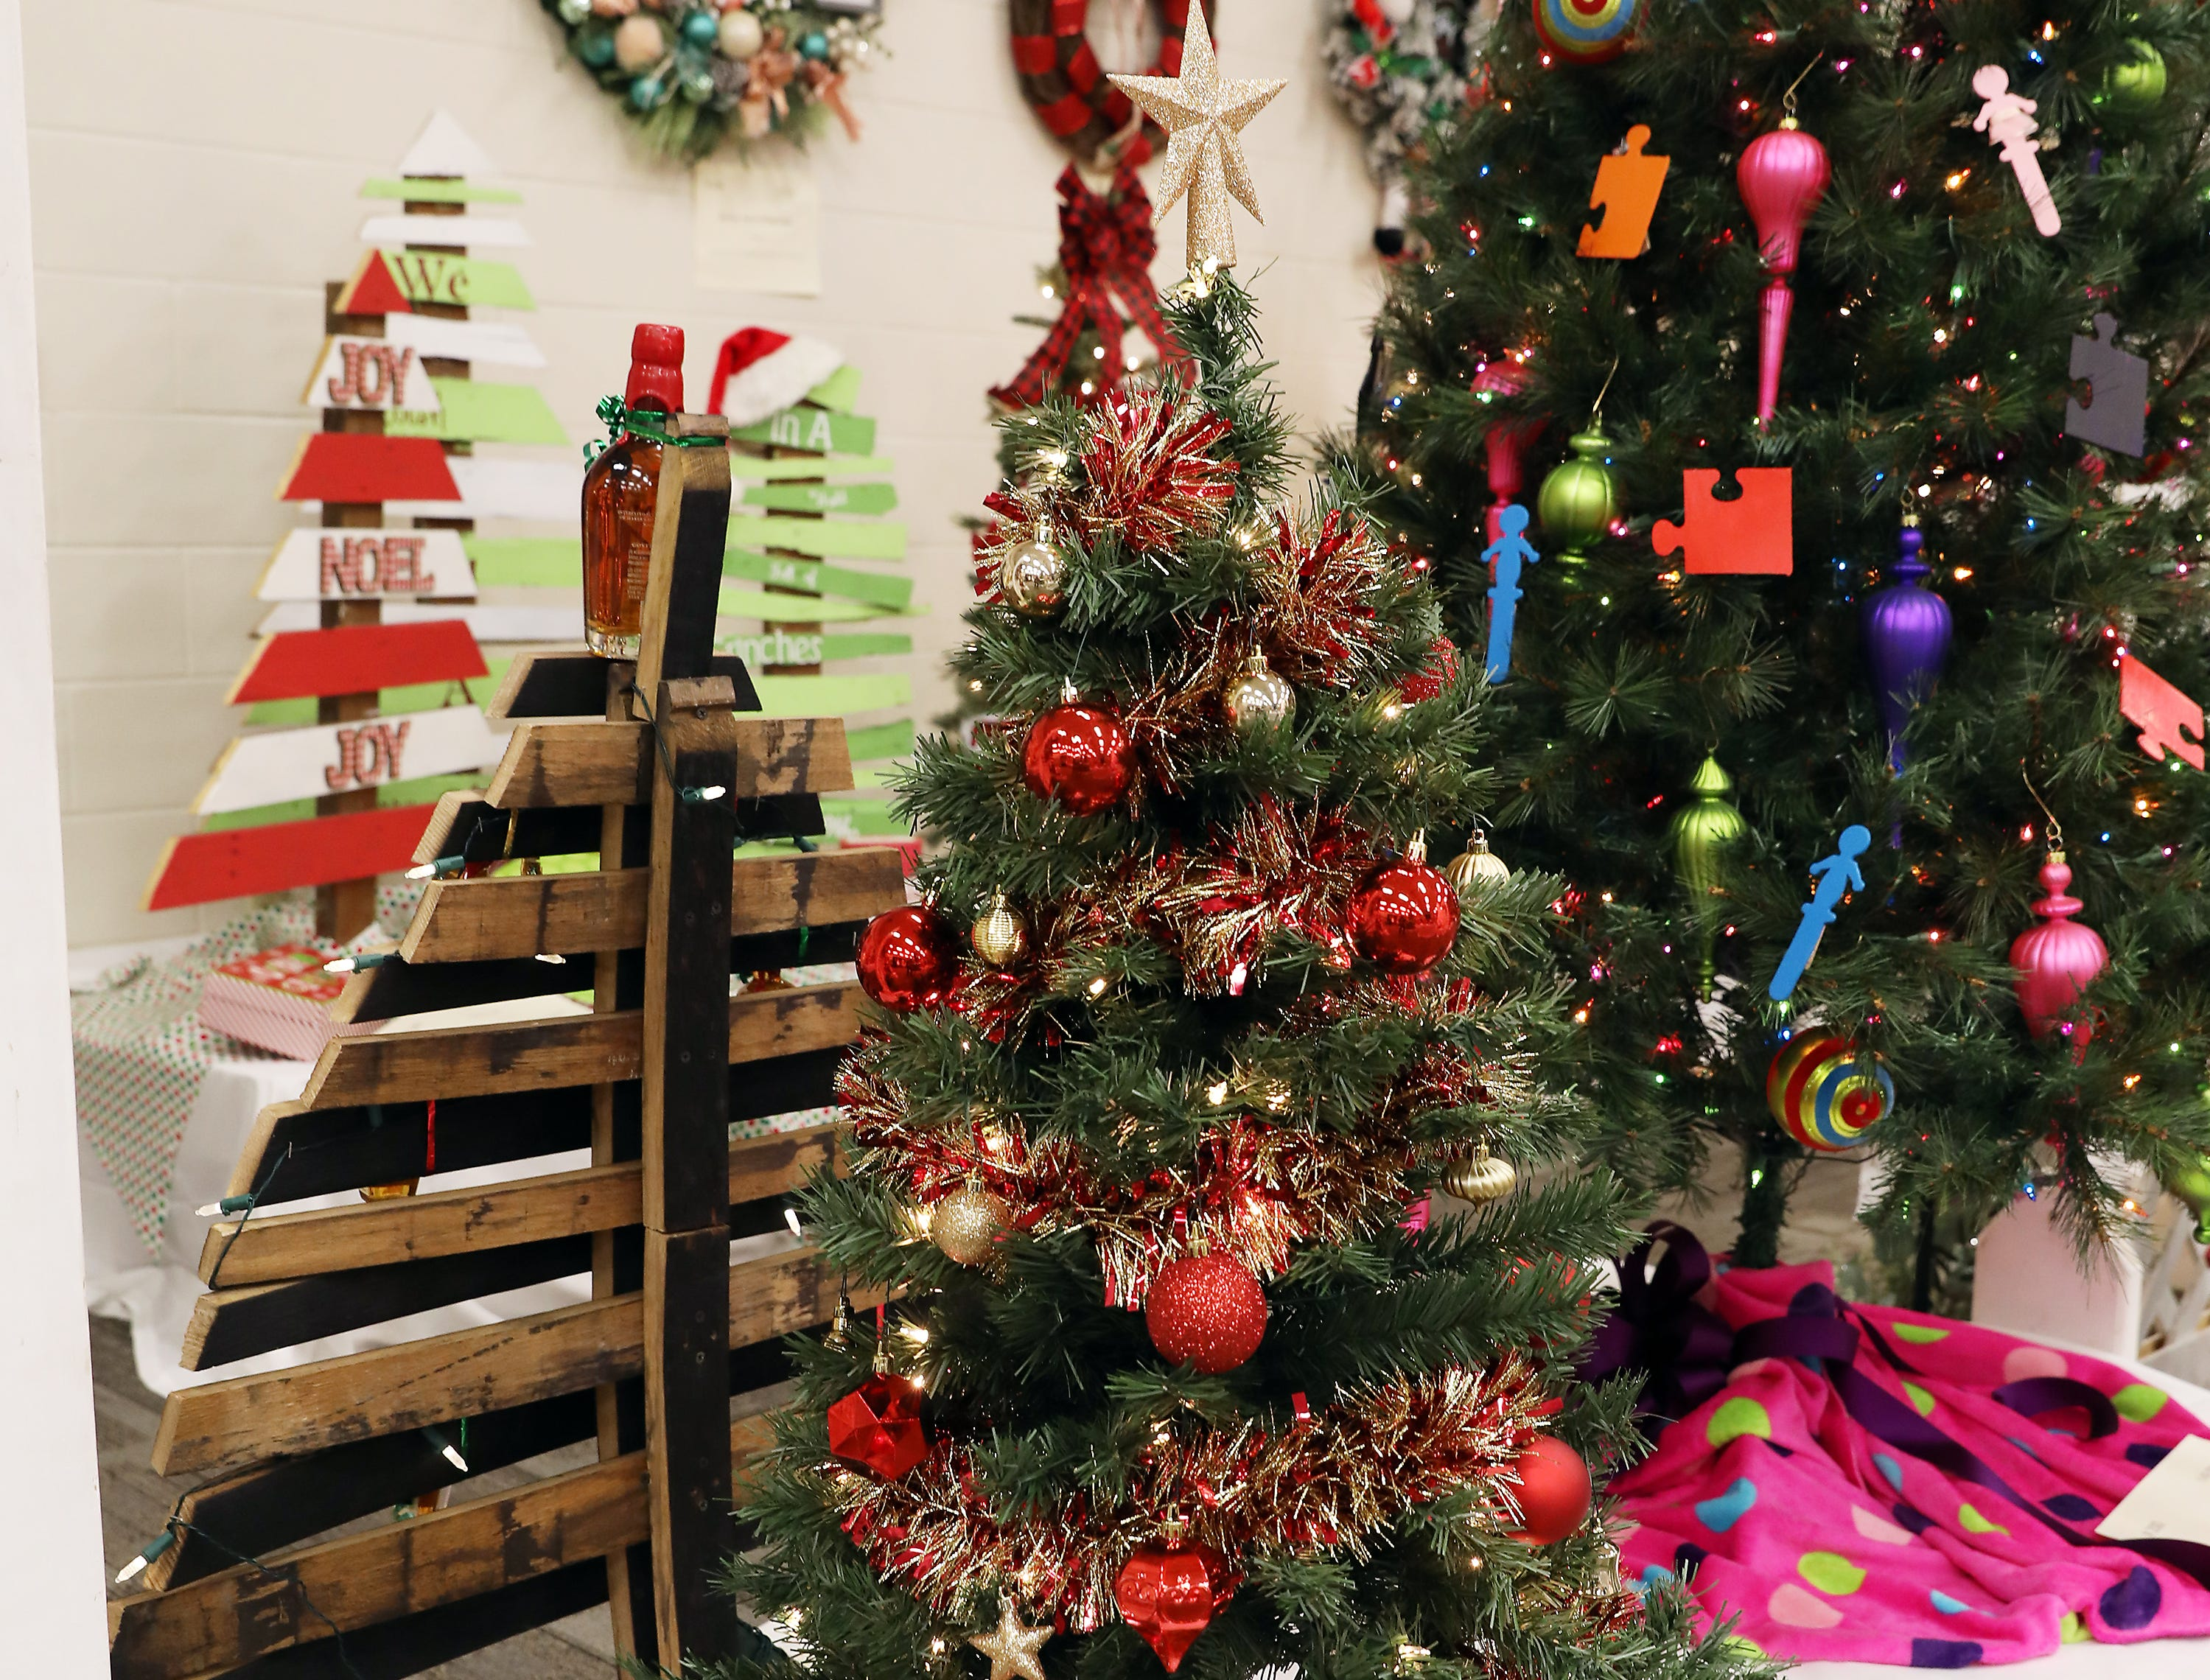 1603:15 PMMaxwells PizzaMedium TreeA Tour of ZanesvilleA medium tree filled with gift cards from all local Zanesville businesses.10 gift cards from Zanesville local businesses.  Get out and see what Zanesville has to offer. $10 Bryan Place, $10 Ditty's Downtown Deli, $10 Tom's Ice Cream Bowl, 2 Large Pizza from Maxwells Pizza,  $10 Muddy Miser, $10 The Barn, $10 Campbells, $10 Eaglesticks Golf Course, $10 Southtown Gym, $10 The Walk.